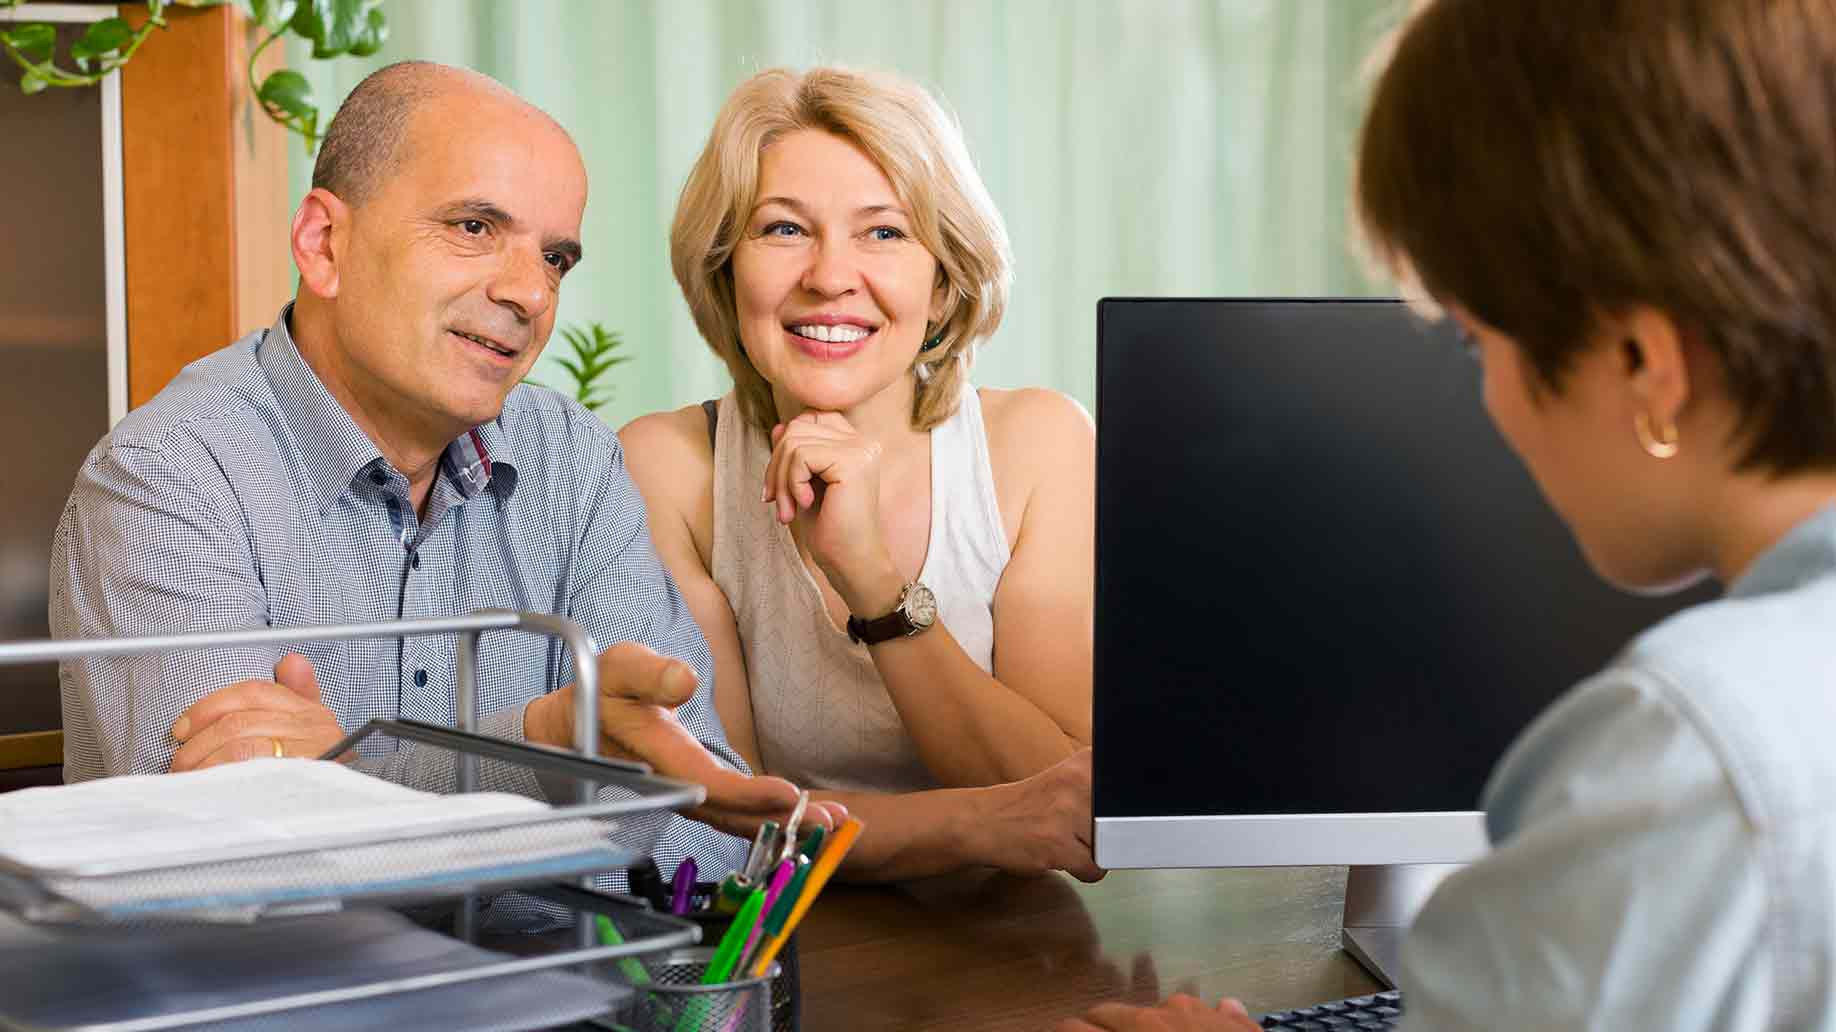 public notary helping happy aged couple